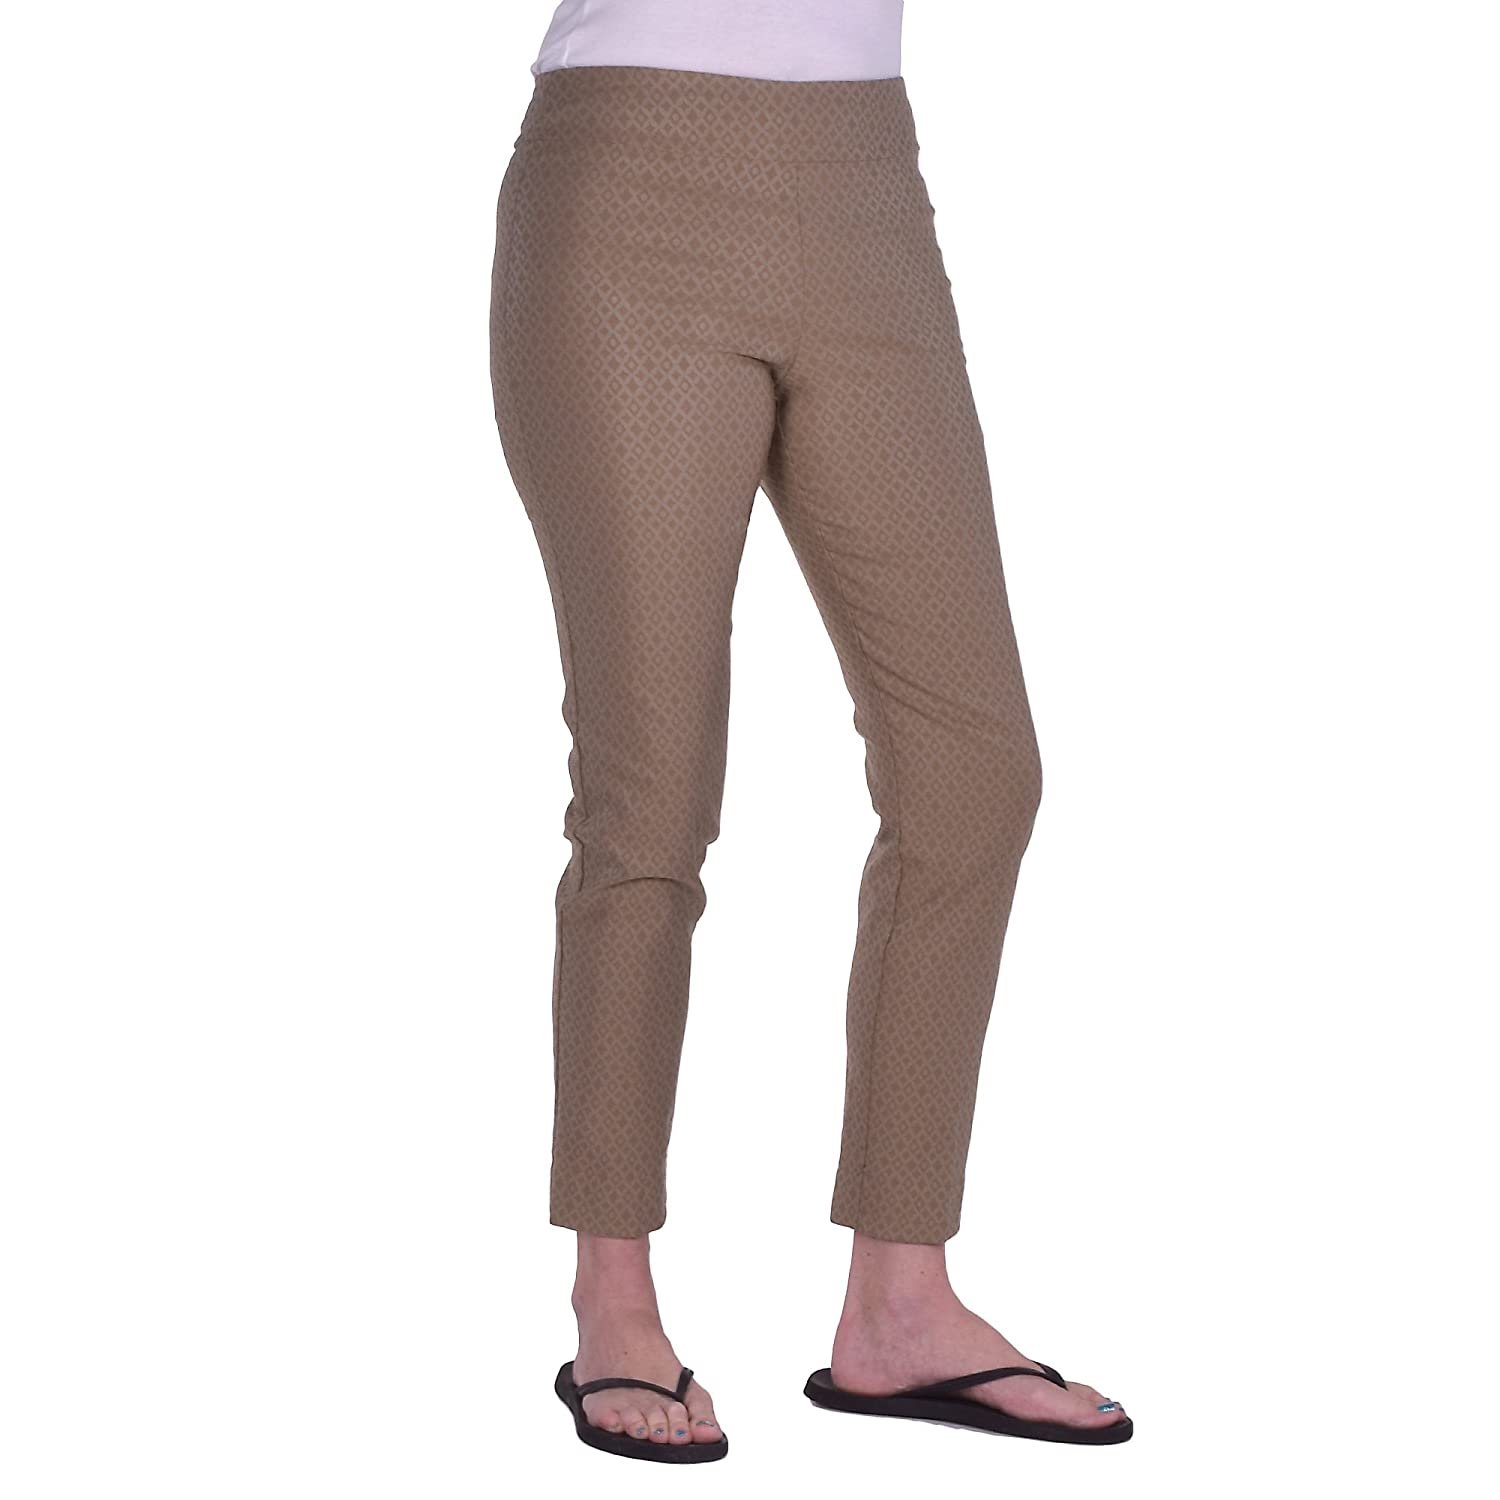 Krazy Larry PANTS レディース B0741DLSFB 6|Taupe Foil Taupe Foil 6